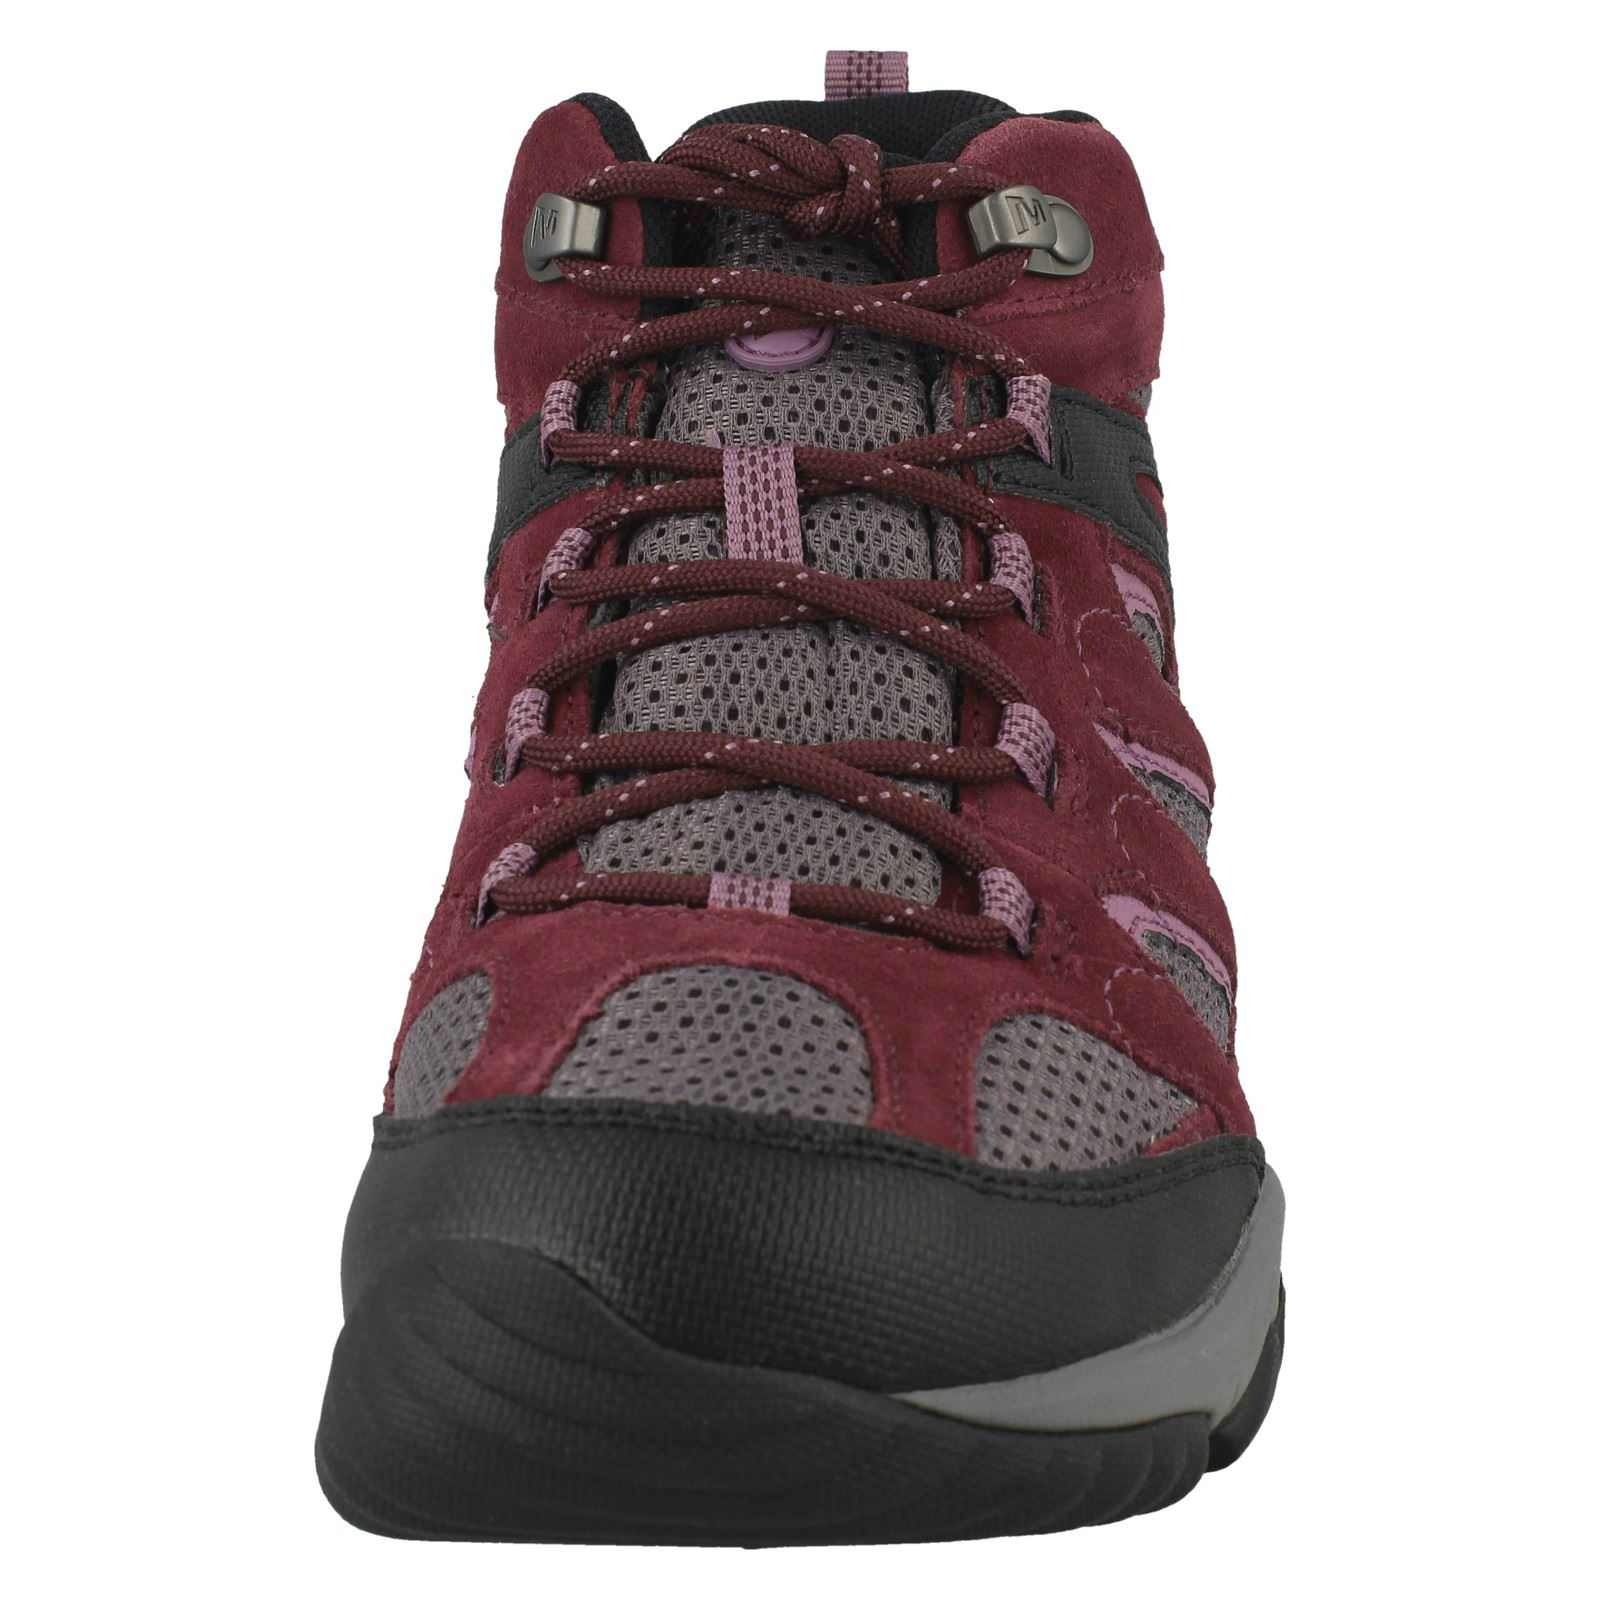 Ladies Merrell Ankle Boots Outmost Mid Vent GTX J41070